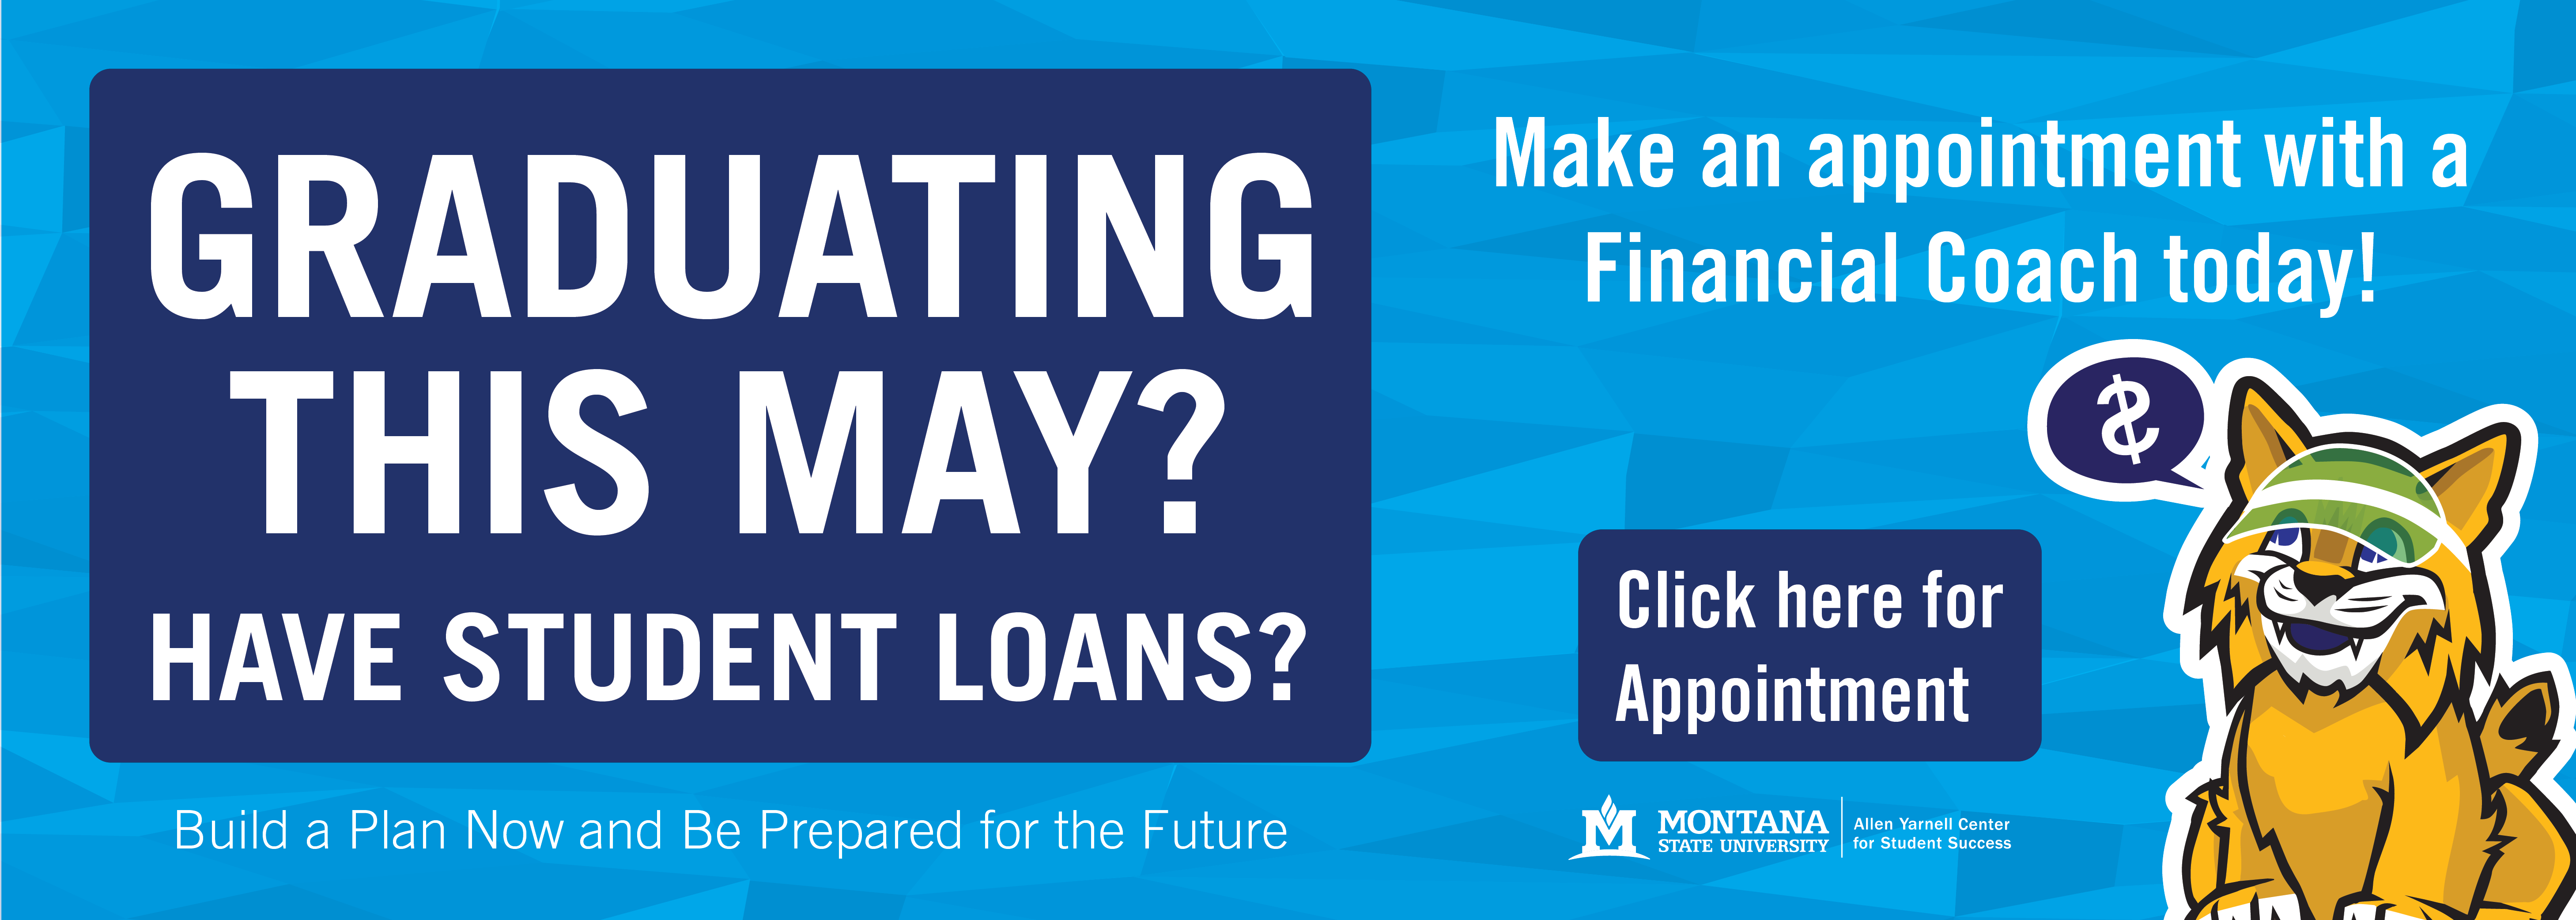 Graduating this May? Have student loans? Make an appointment with a Financial Coach today! Click here for appointment